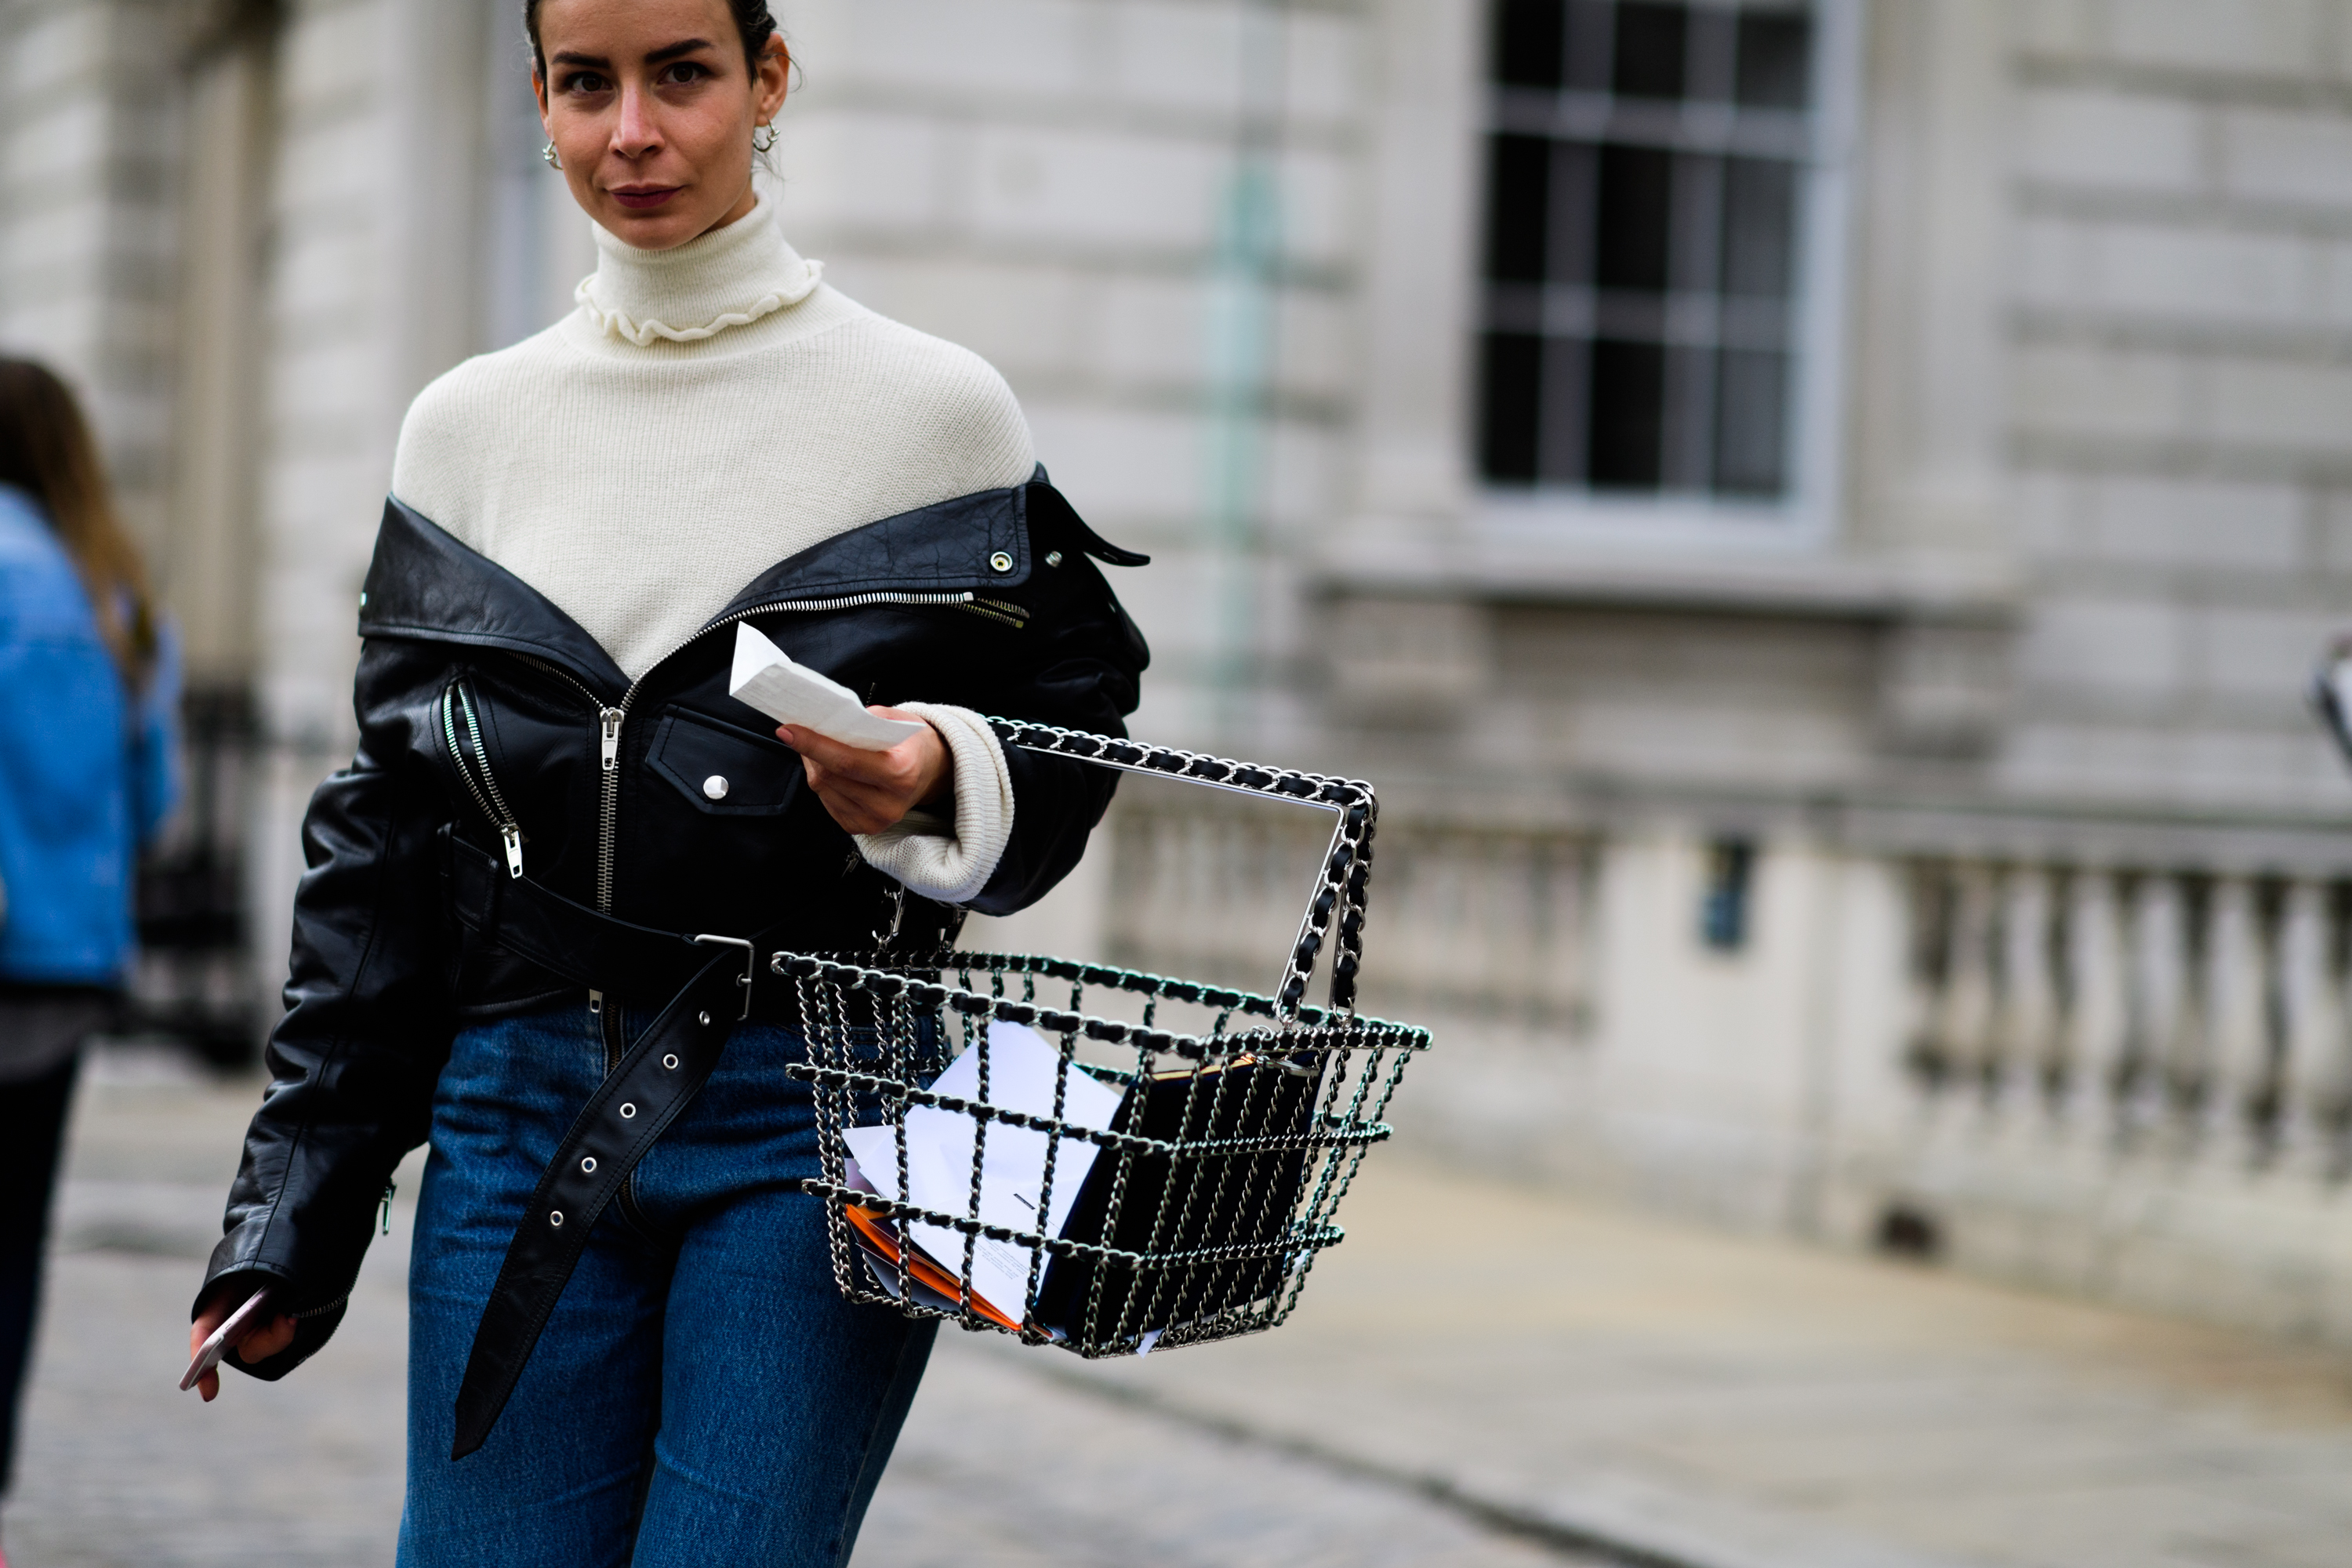 london-lfw-street-style-ss18-day-1-tyler-joe-093-1505753314